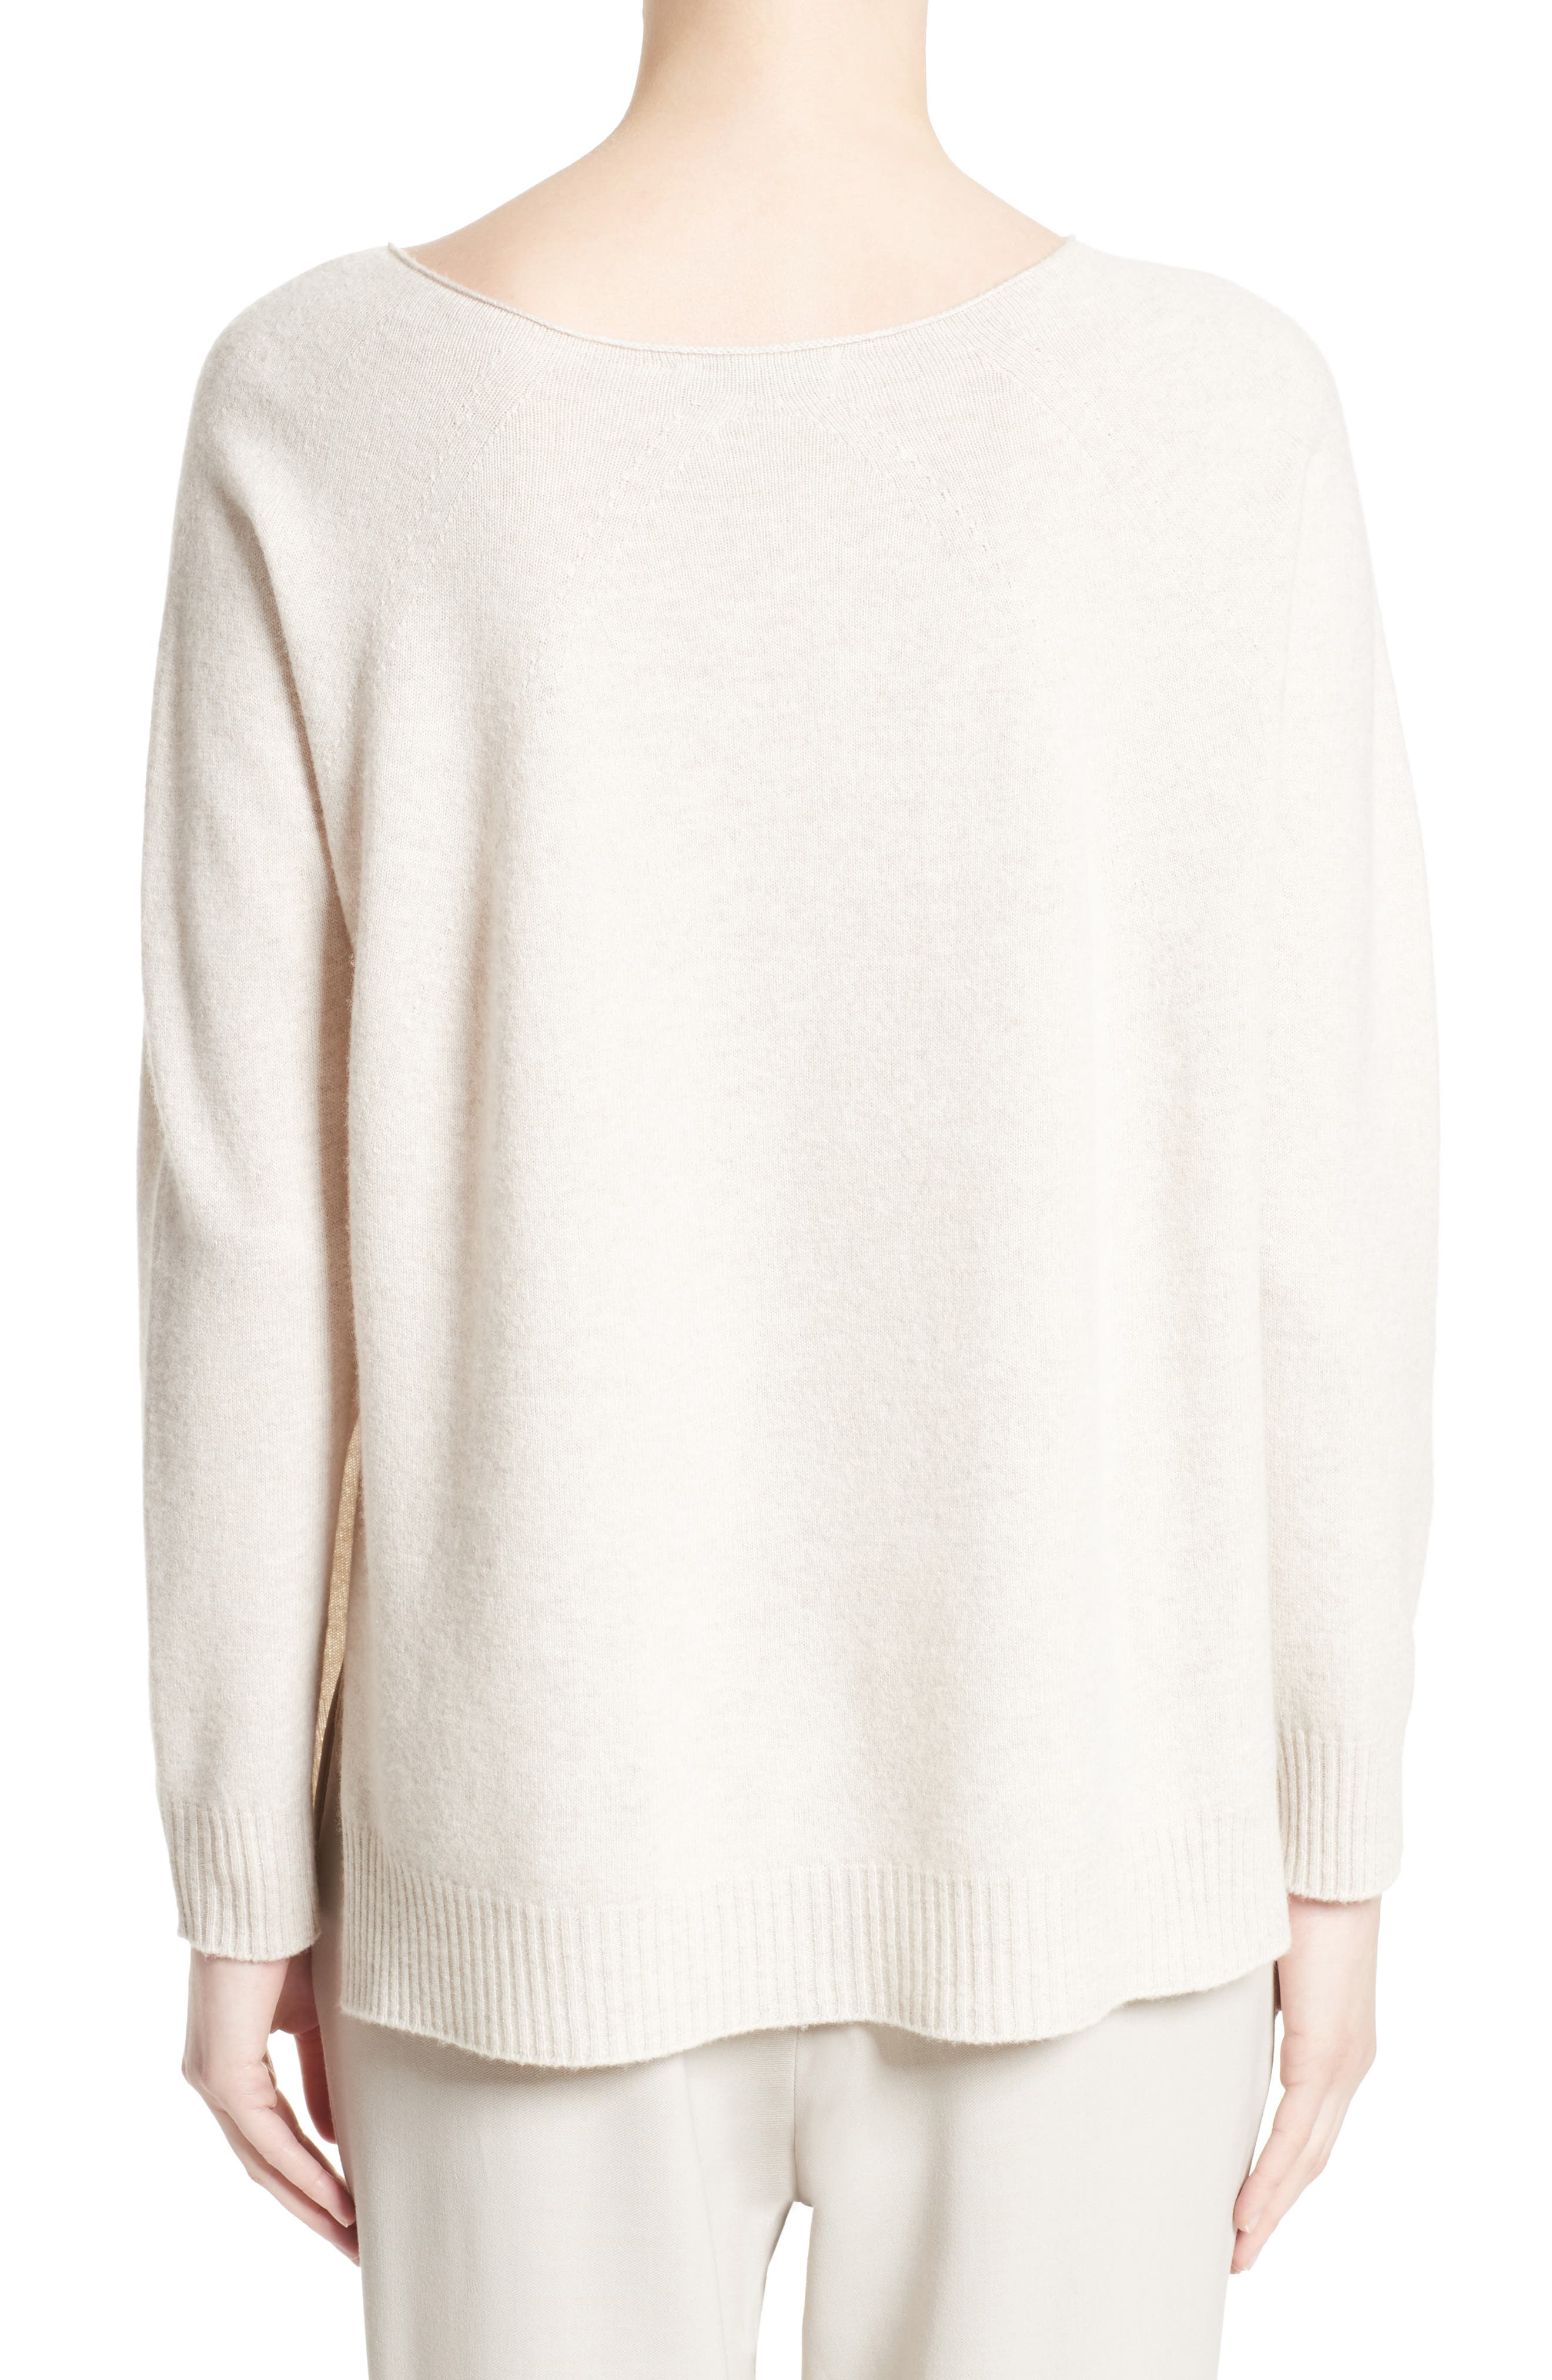 Needle Punch Ostrich Feather Trim Sweater,                             Alternate thumbnail 2, color,                             Oatmeal